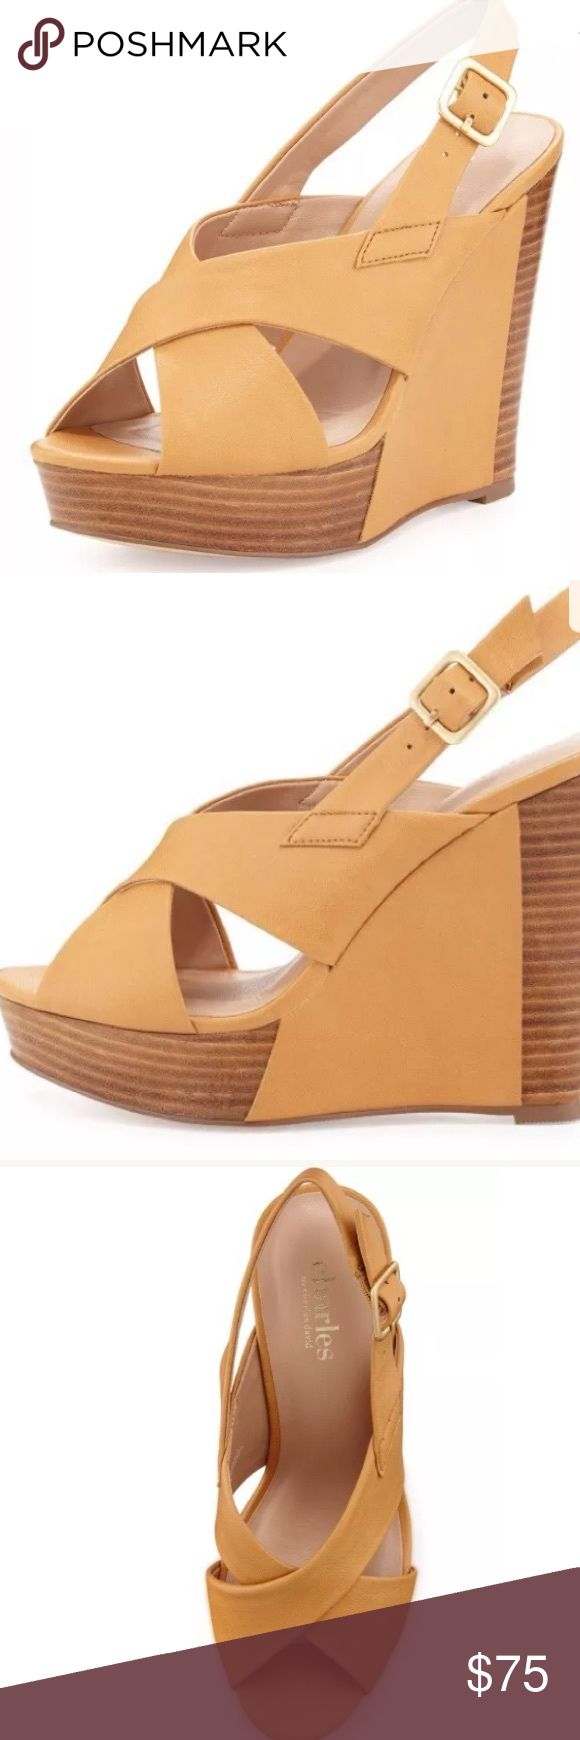 "Charles David Beige Platform Wedge Strappy Sandal Brand new in box Artist by Charles David Purchased from Neiman Marcus Retails $135 Charles by Charles David leather crisscross beige wedge sandal. 5"" stacked heel; 1"" platform; 4"" equiv. Peep toe. Golden buckle slingback strap. Padded footbed. Synthetic sole. Charles David Shoes Sandals"